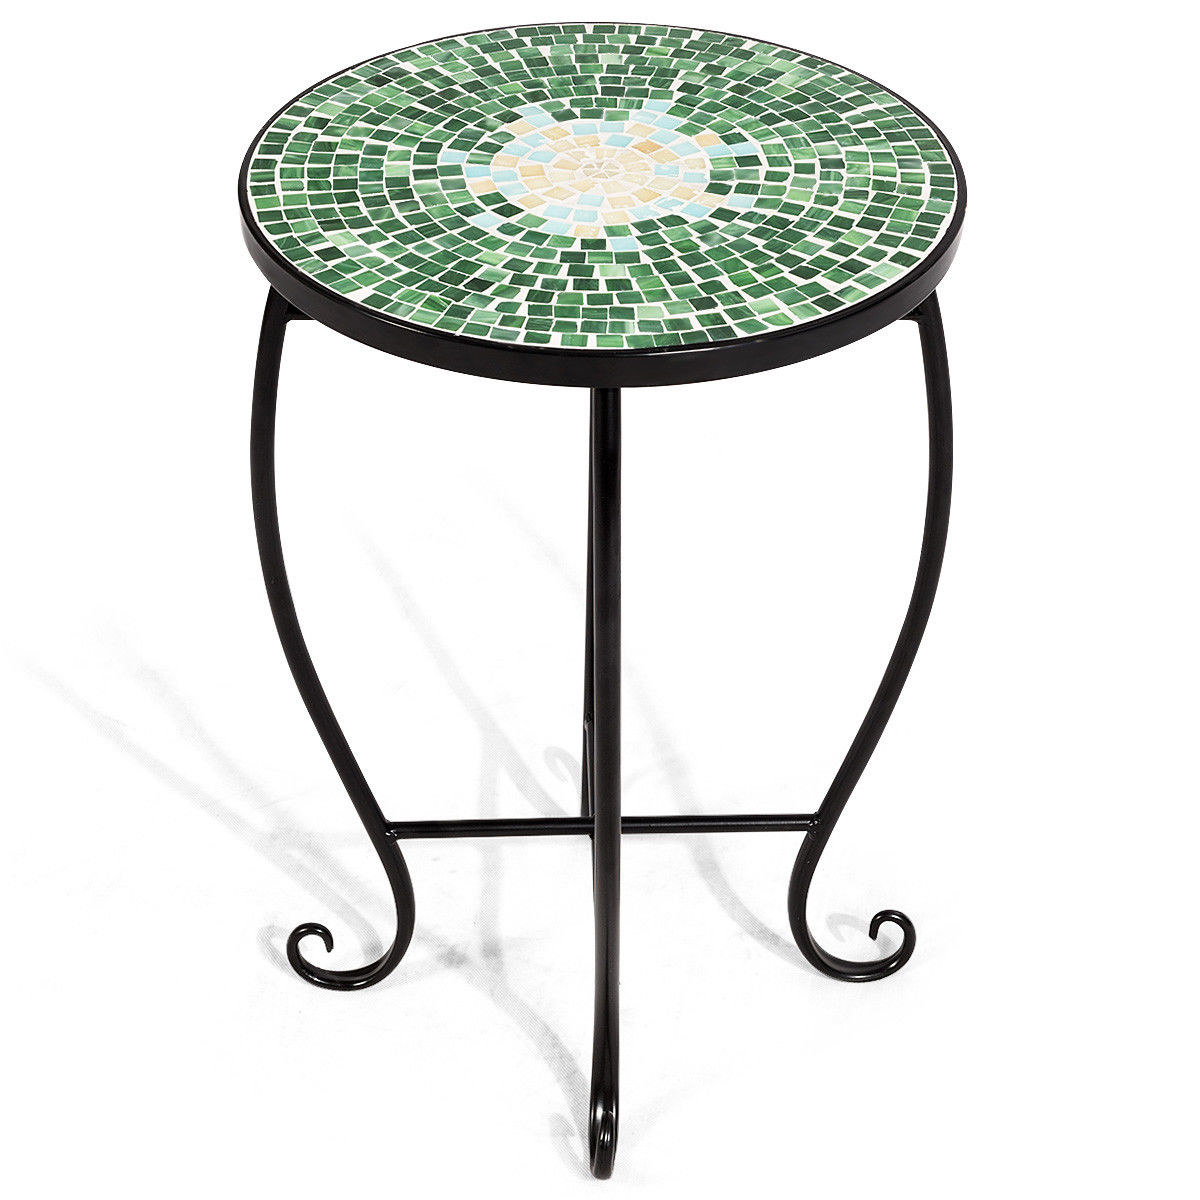 round side table with black metal legs and mosaic top in green, blue, and yellow design